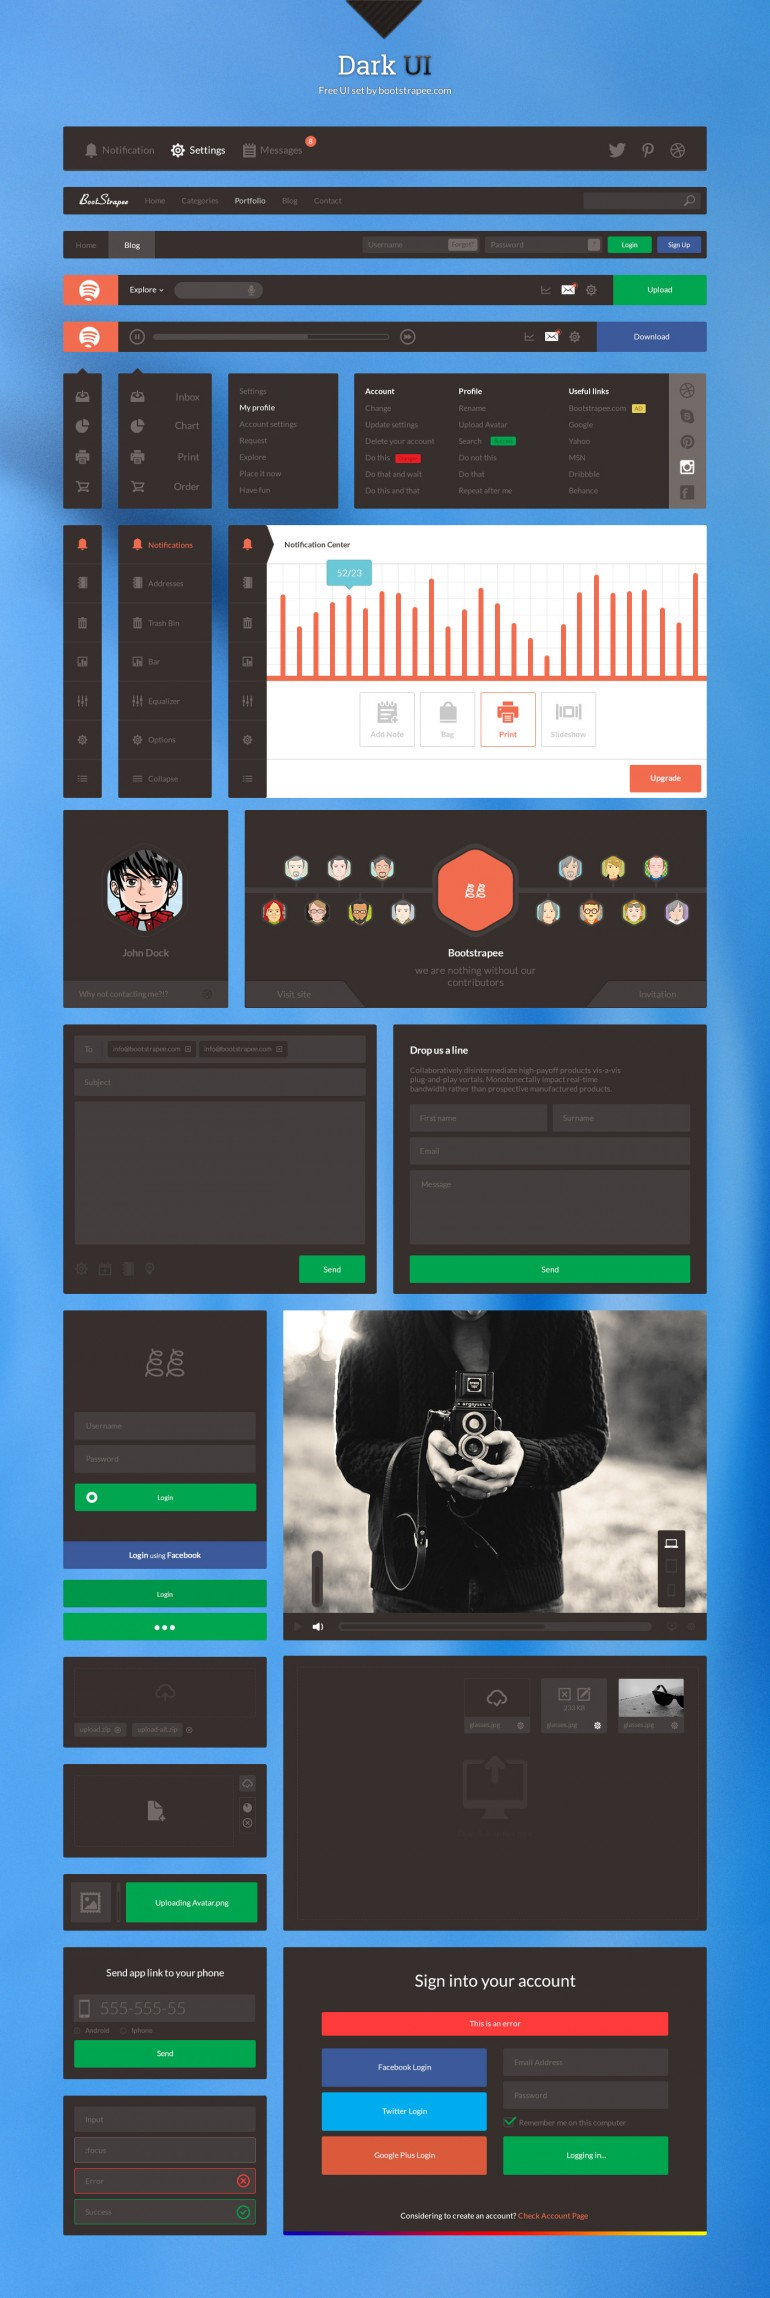 Dark UI – Free UI Set